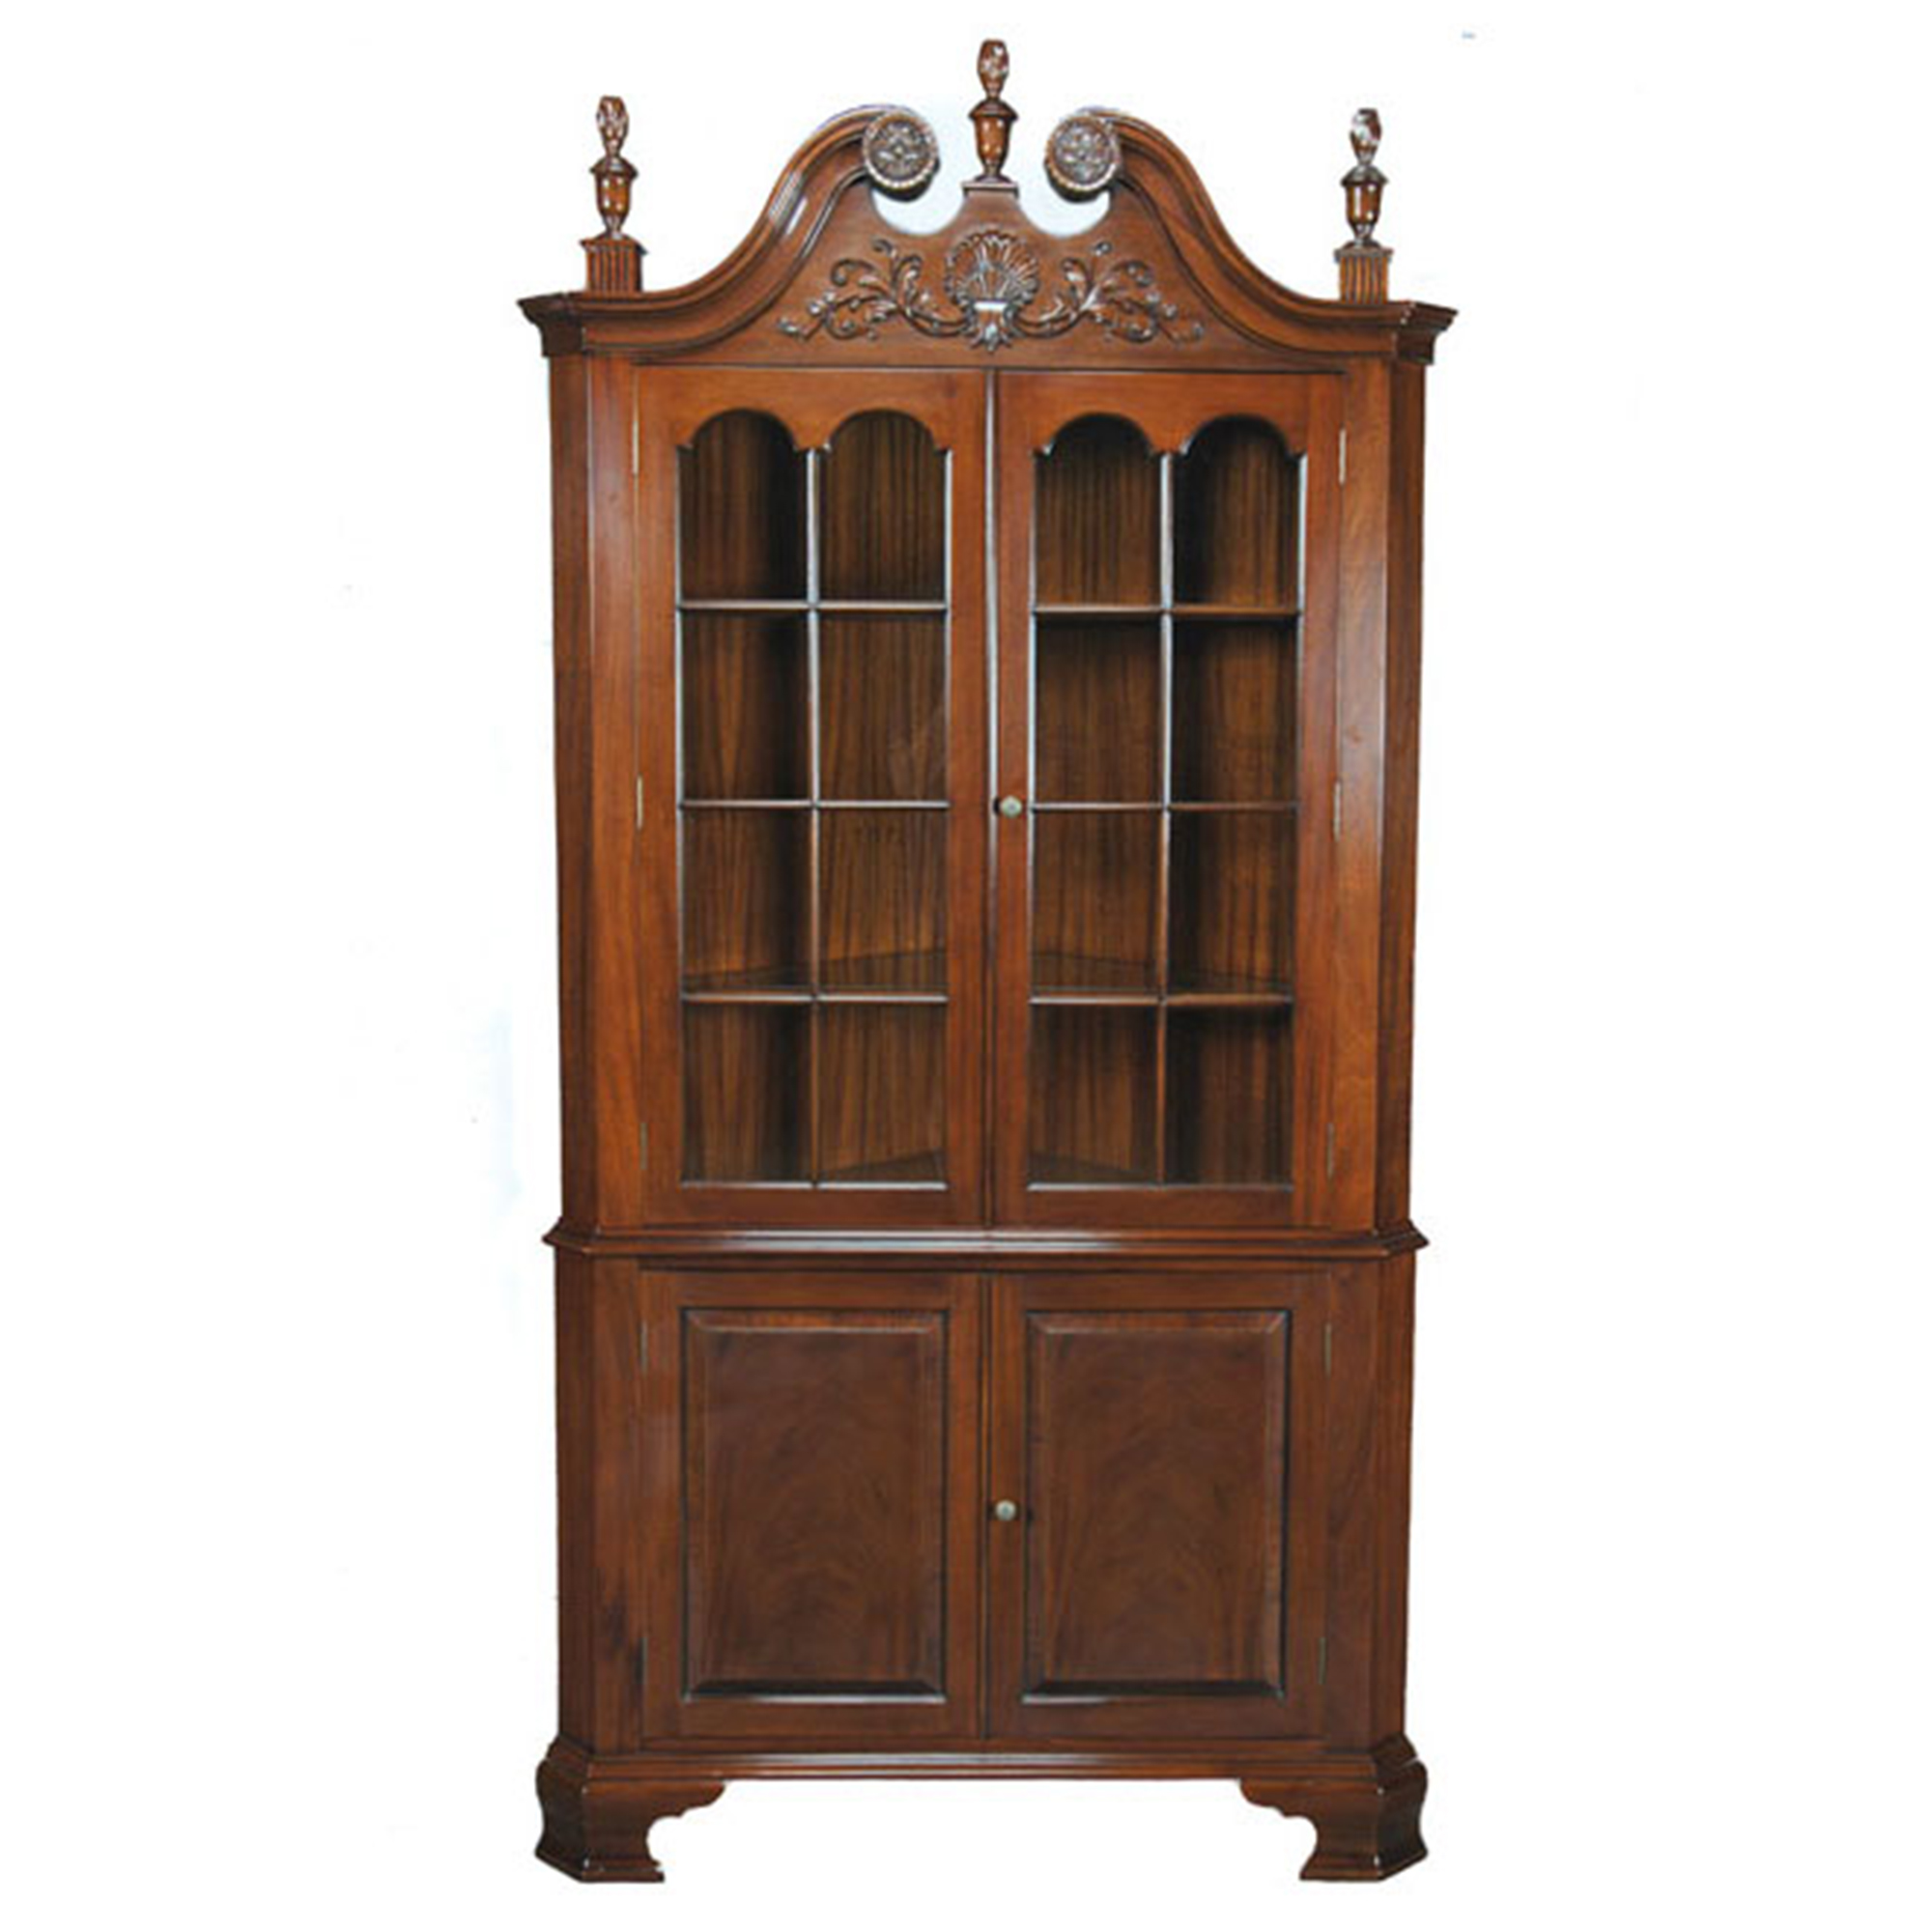 Corner Dining Room Cabinet: Carved Corner Cabinet, Niagara Furniture, Mahogany Dining Room